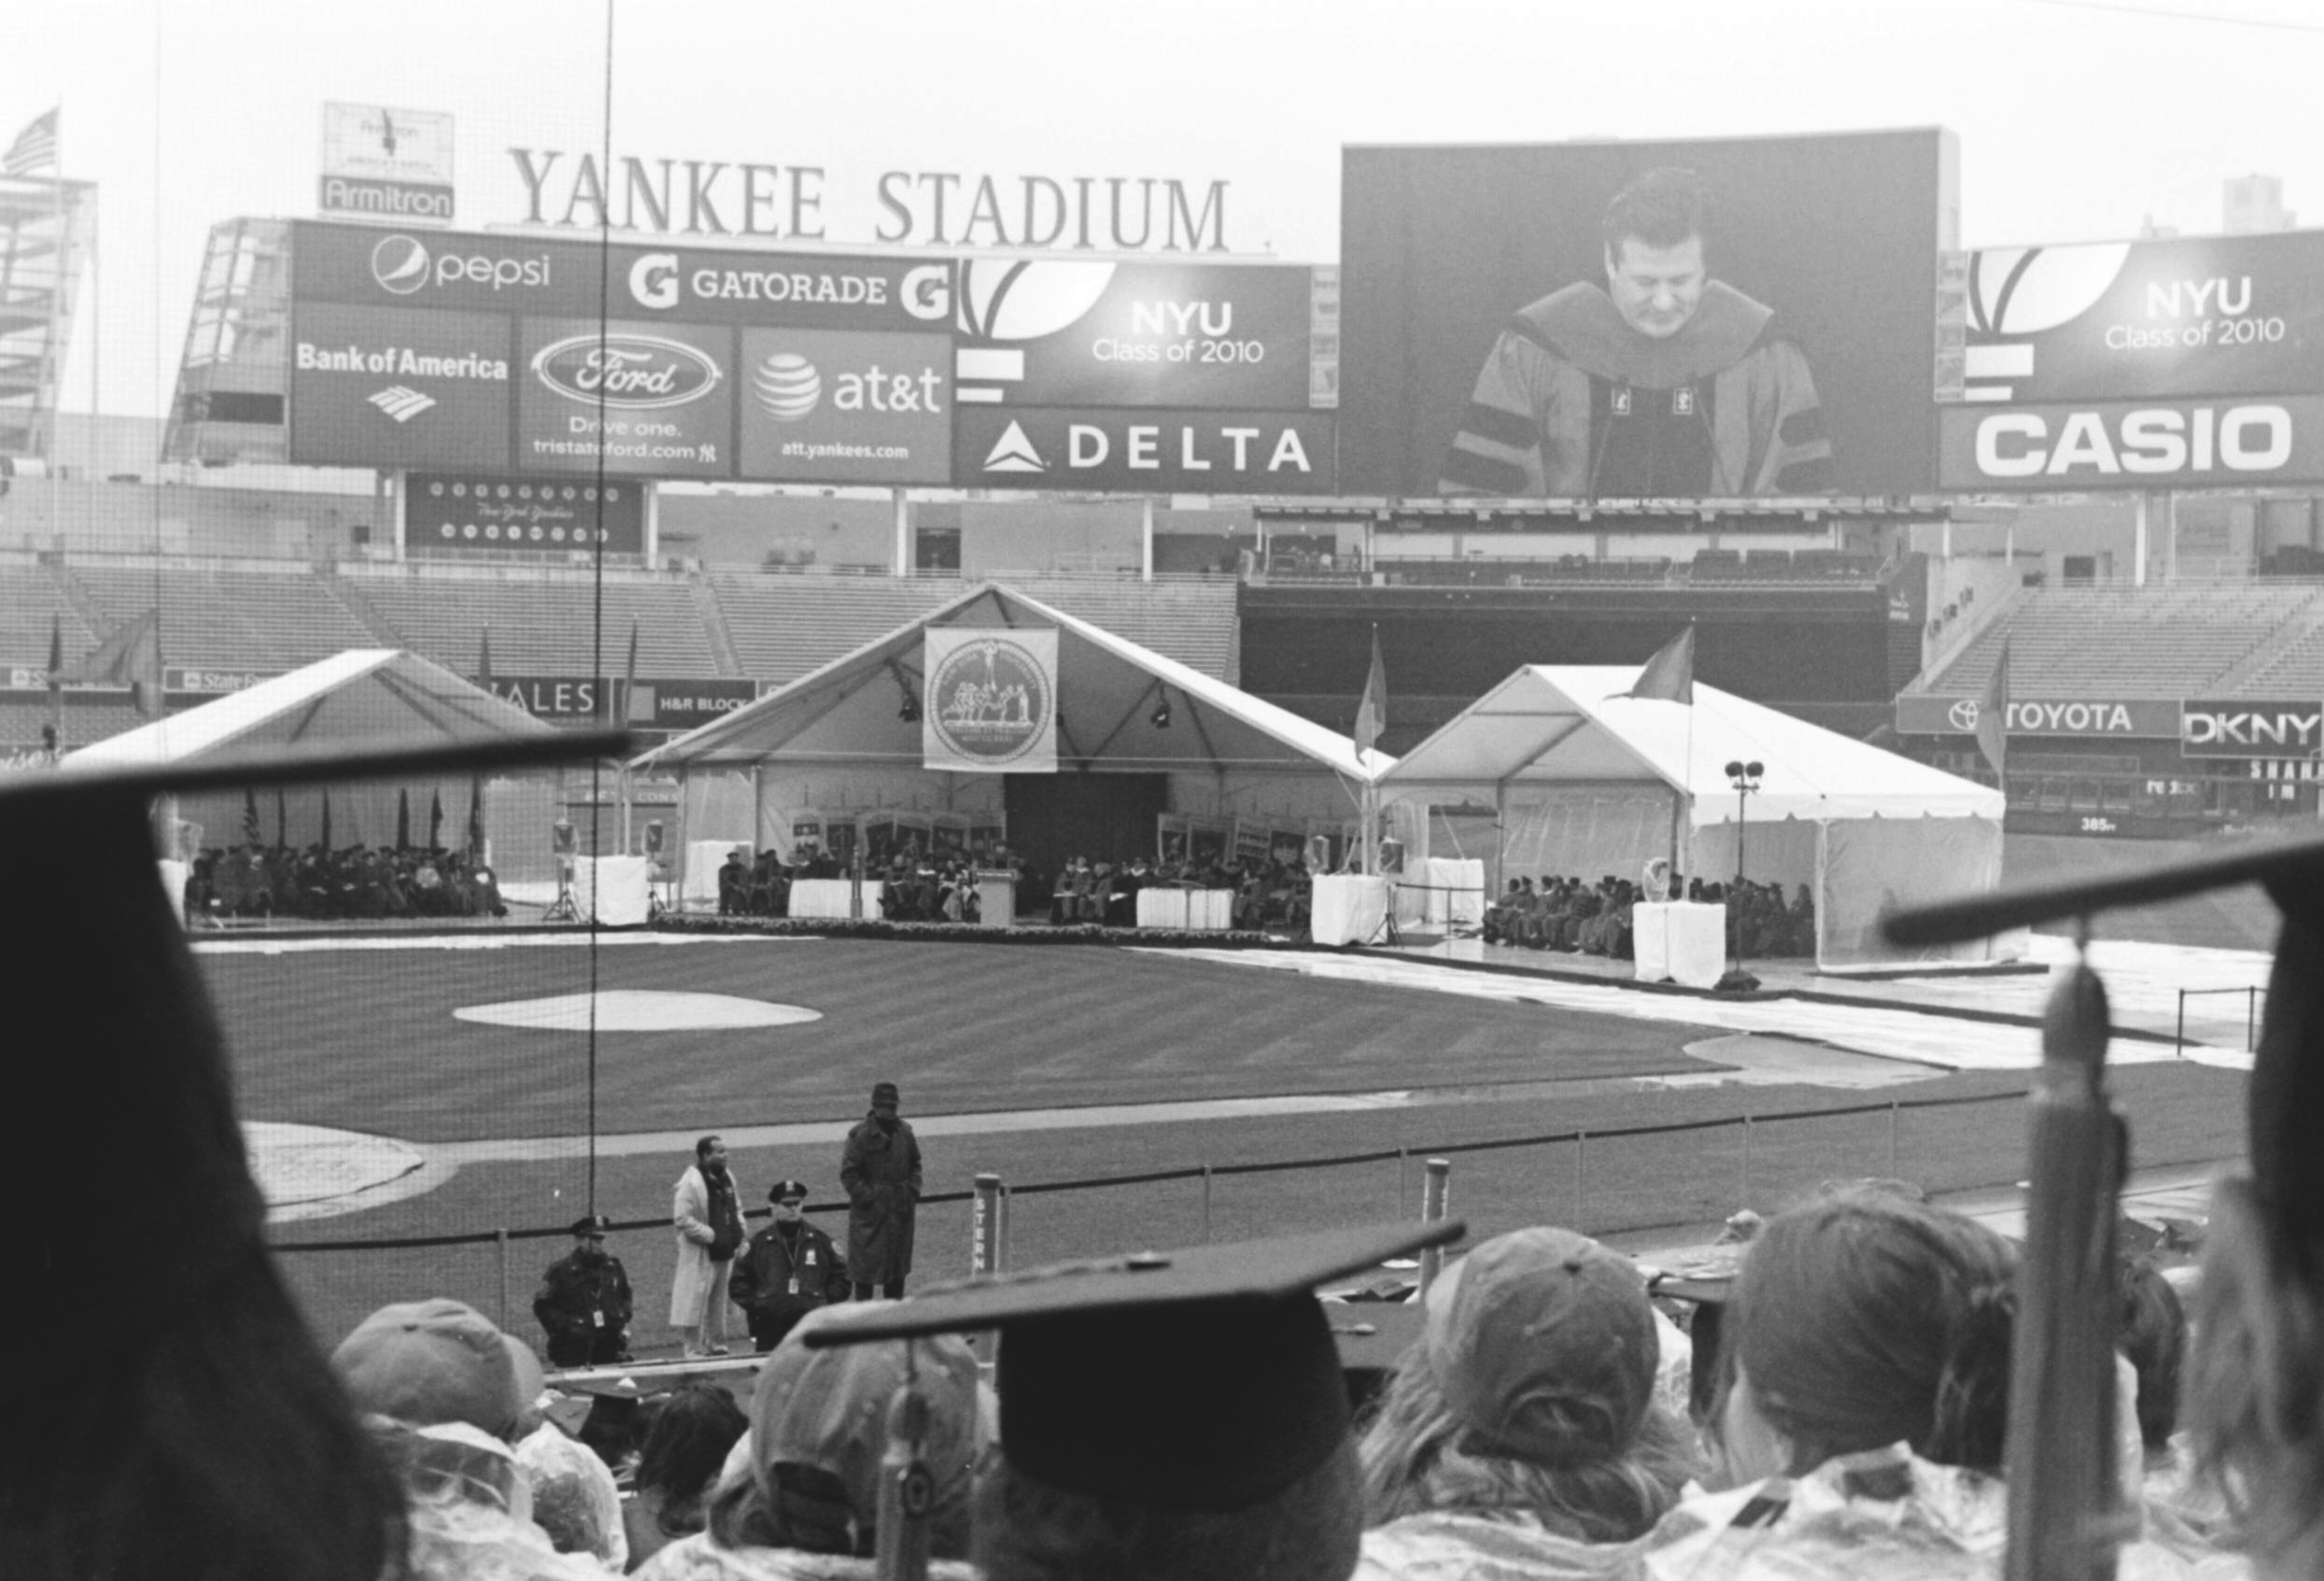 Alec Baldwin speaks in Yankee Stadium  NYU Graduation 2010  35mm b&w film